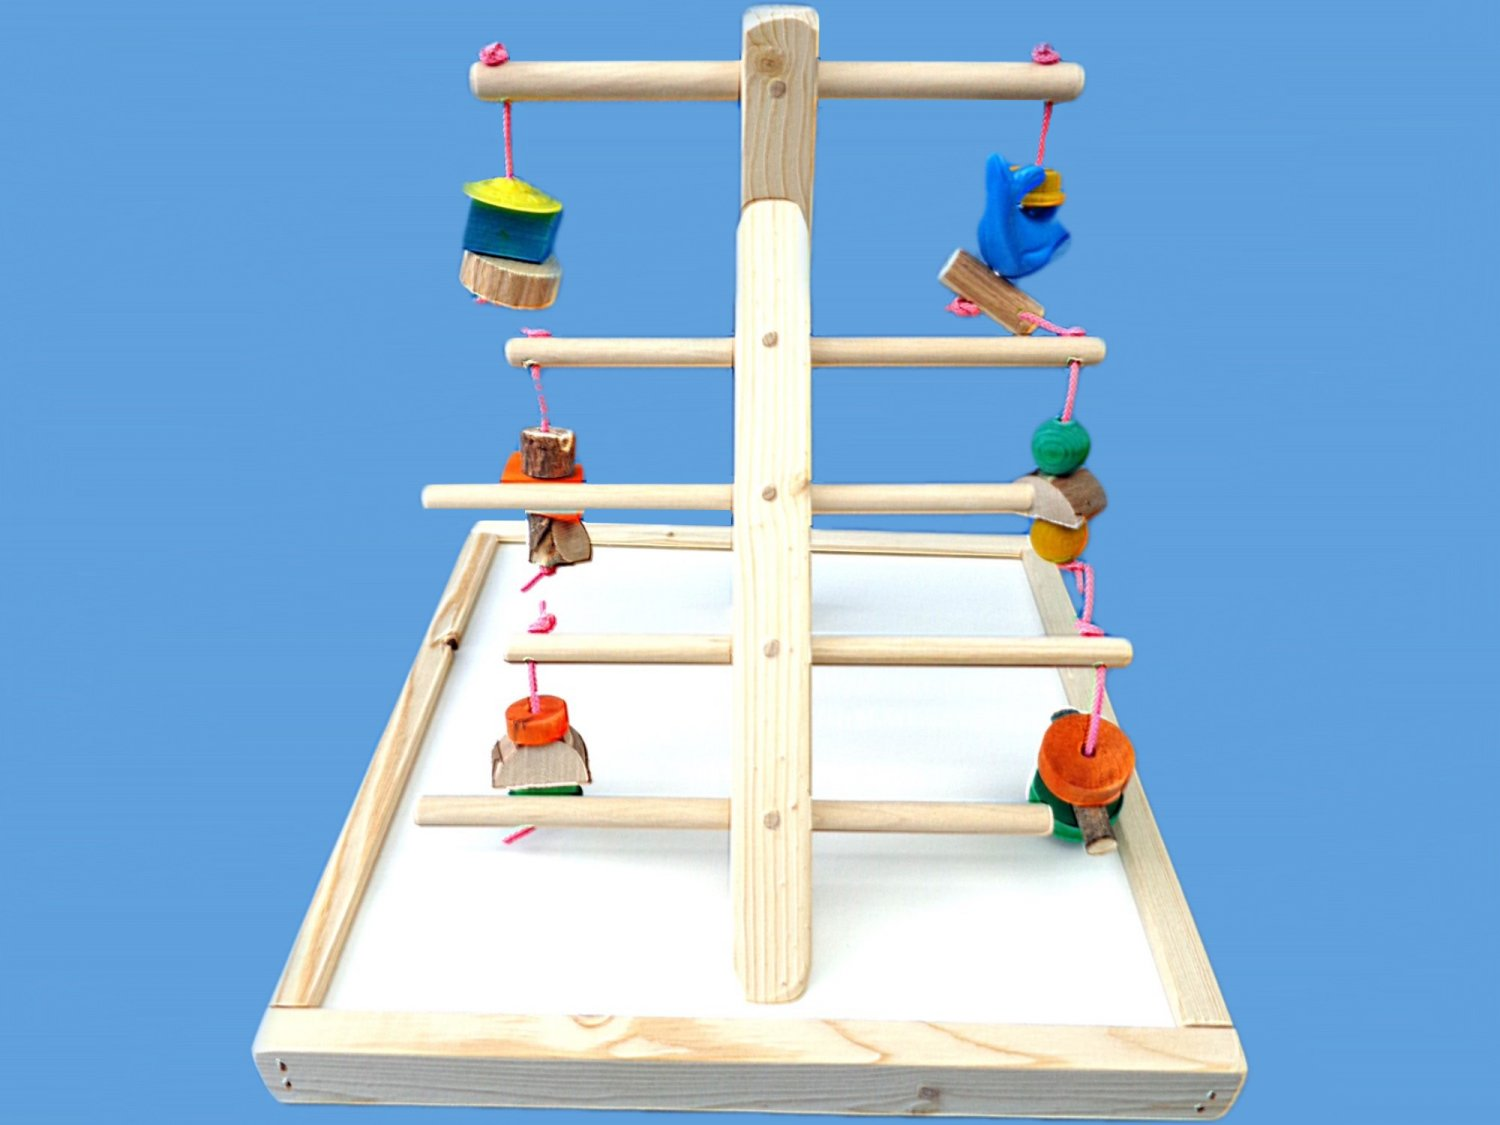 Ladder play gym for cockatiels , conures , love birds etc.